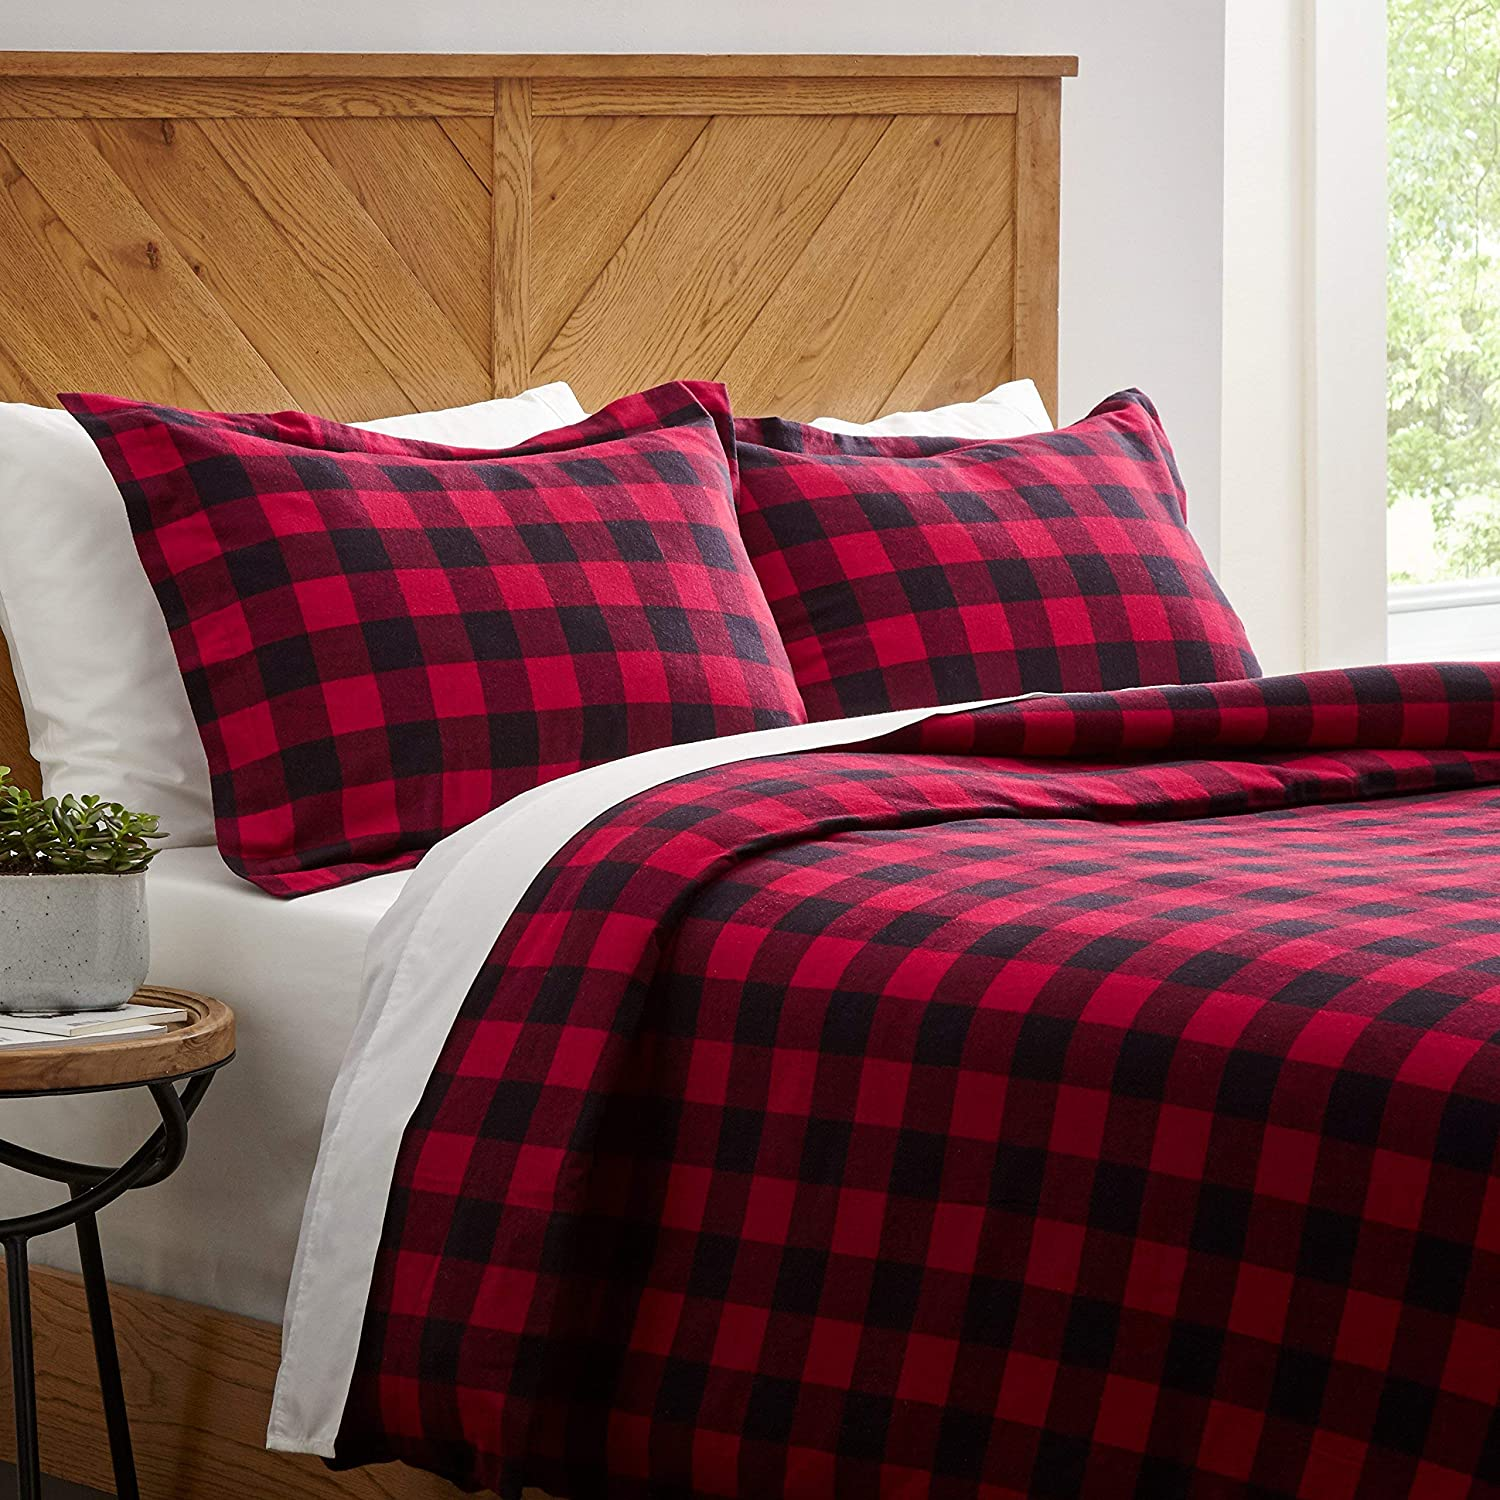 Stone & Beam Rustic Buffalo Check Soft and Breathable Flannel Yarn-Dyed Duvet Set, Full Queen, Red and Black